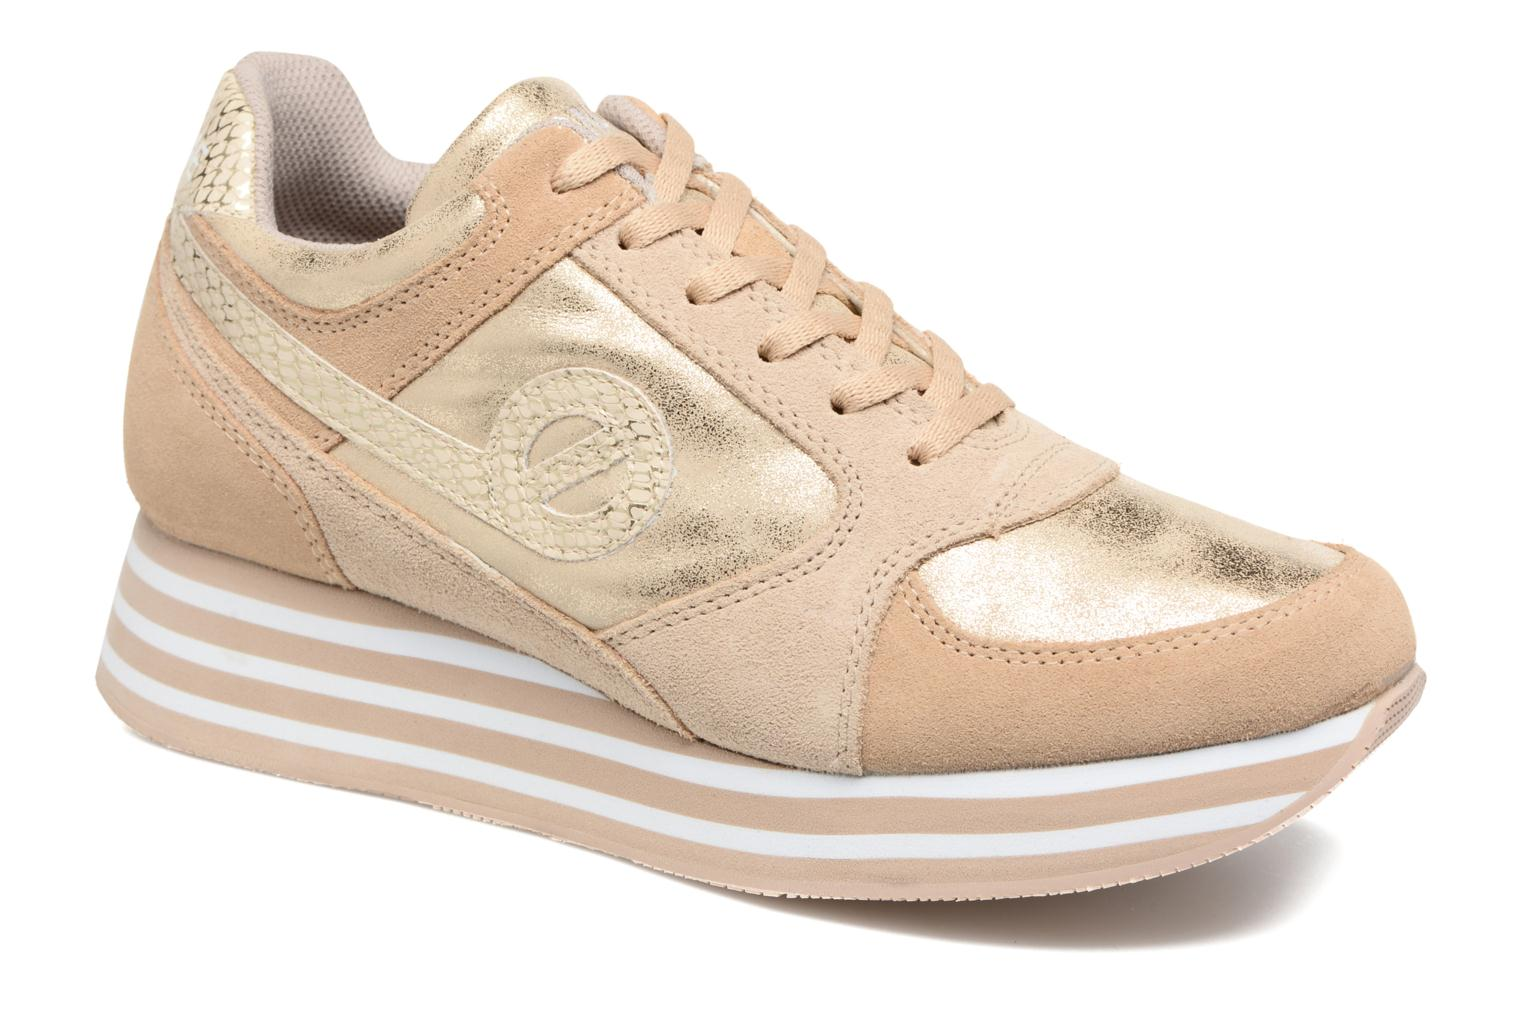 sneakers-parko-jogger-by-name